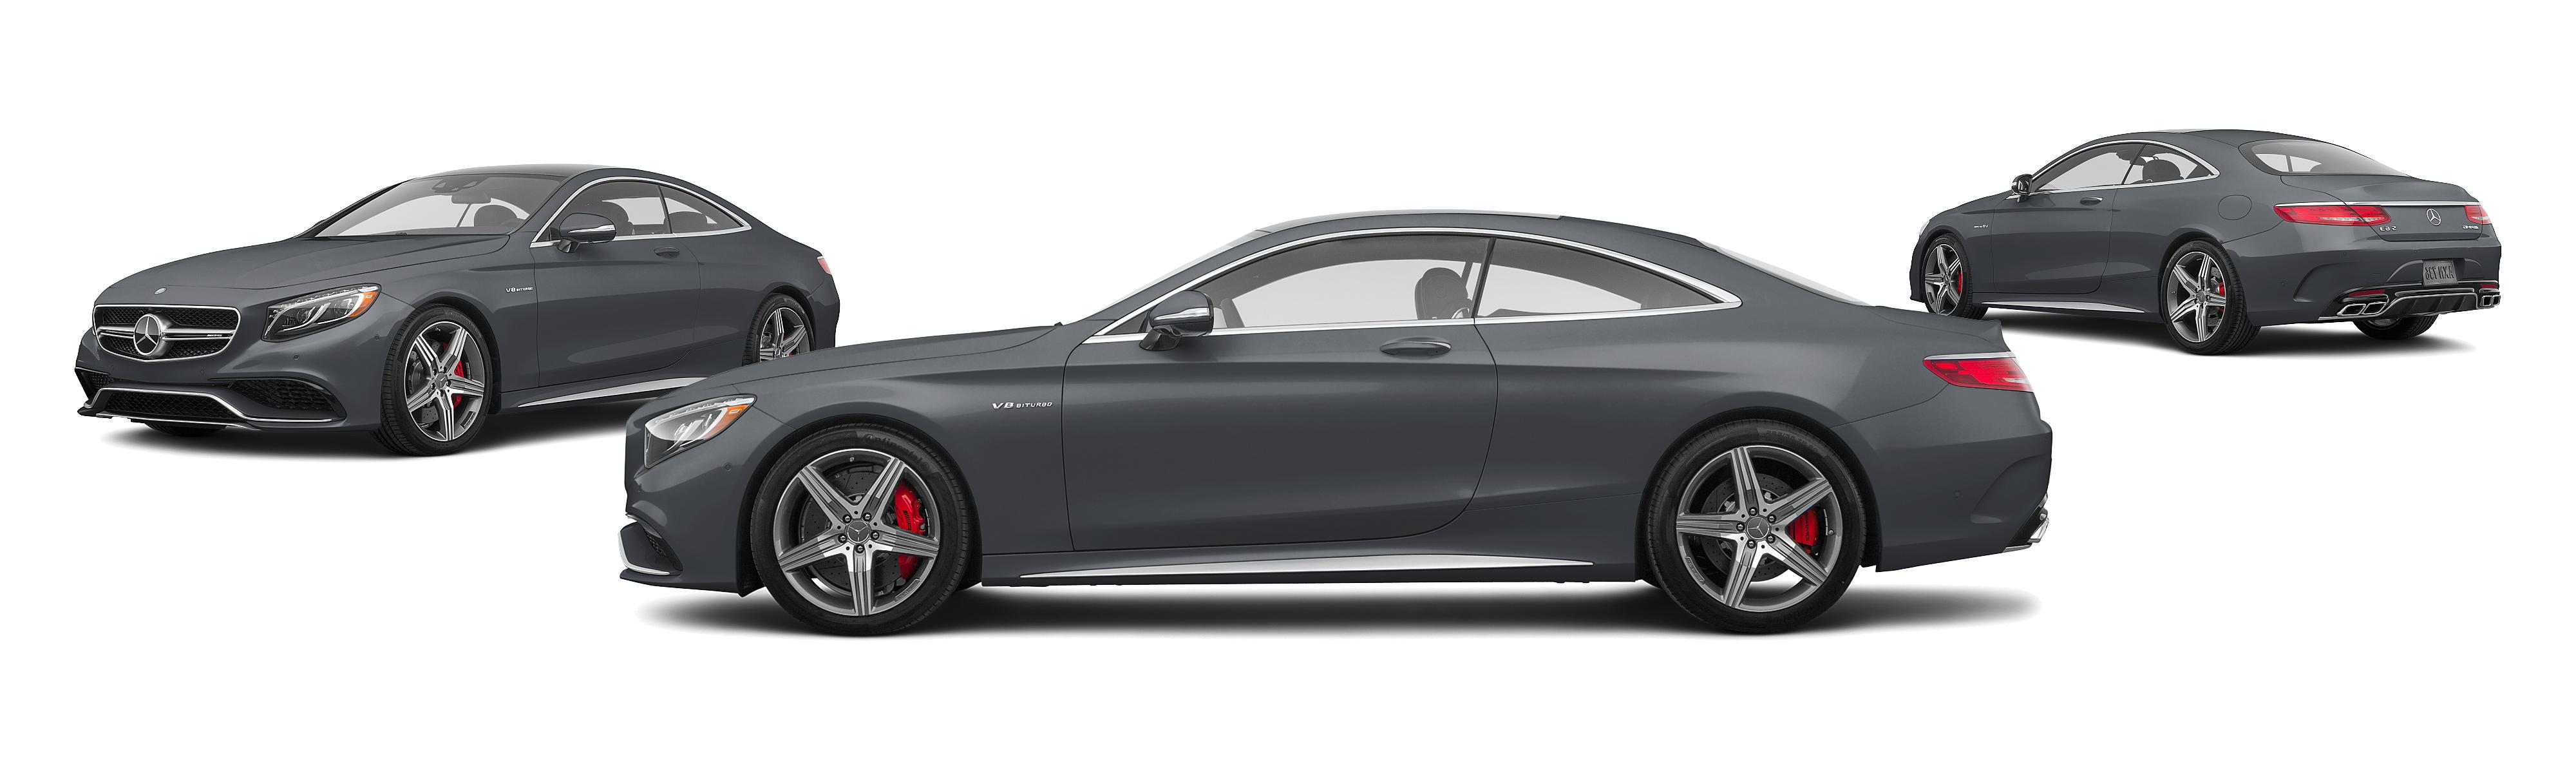 2017 Mercedes Benz S Class AWD AMG S 63 4MATIC 2dr Coupe Research GrooveCar